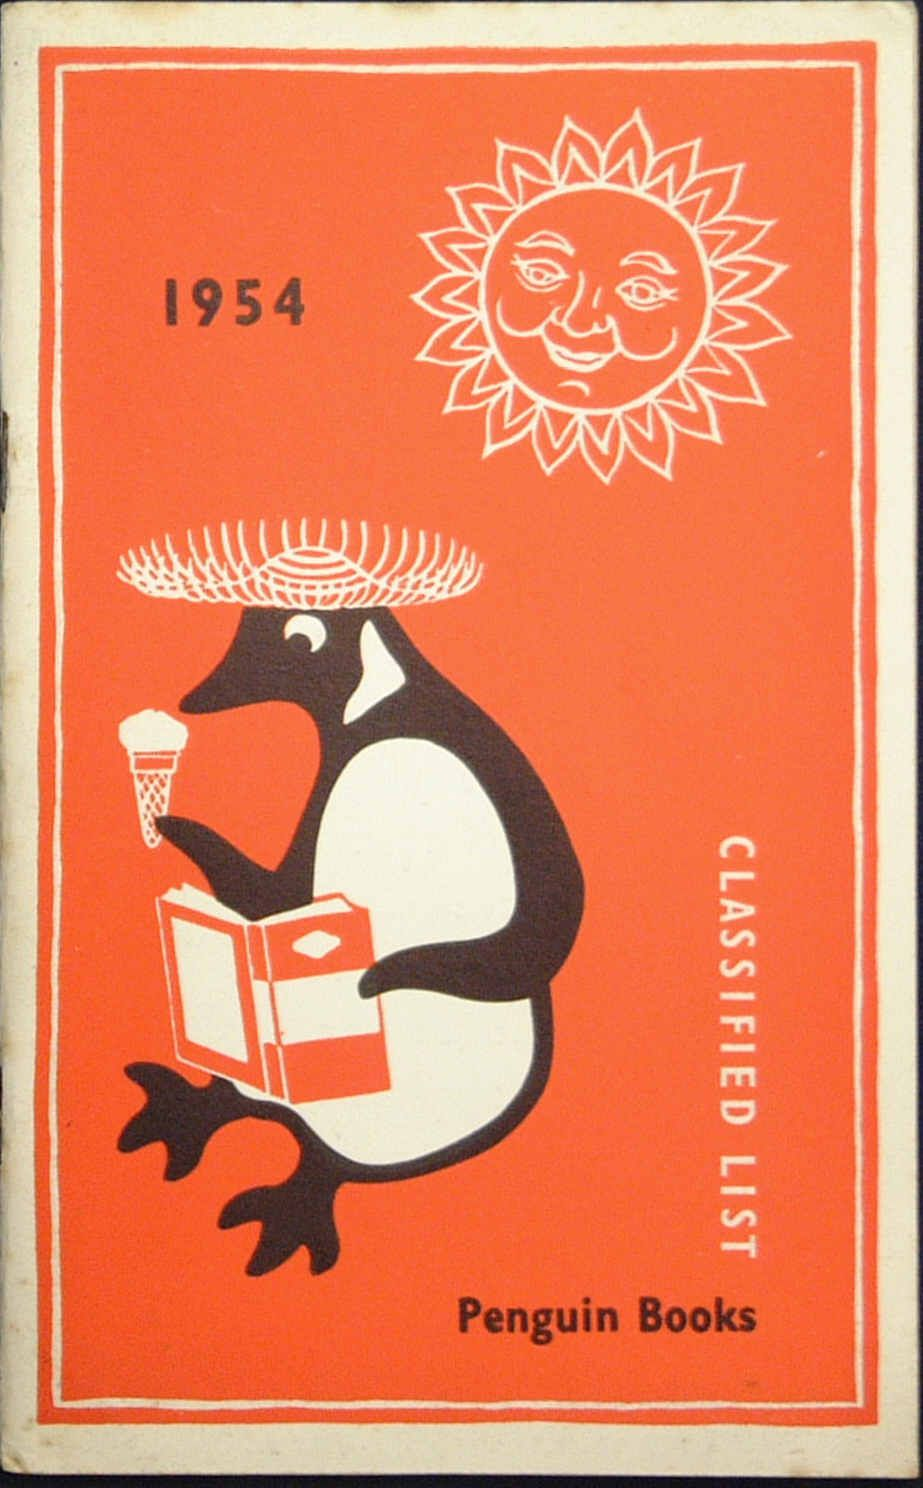 Penguin Book Cover Queen : Penguin books classified list cover graphic design